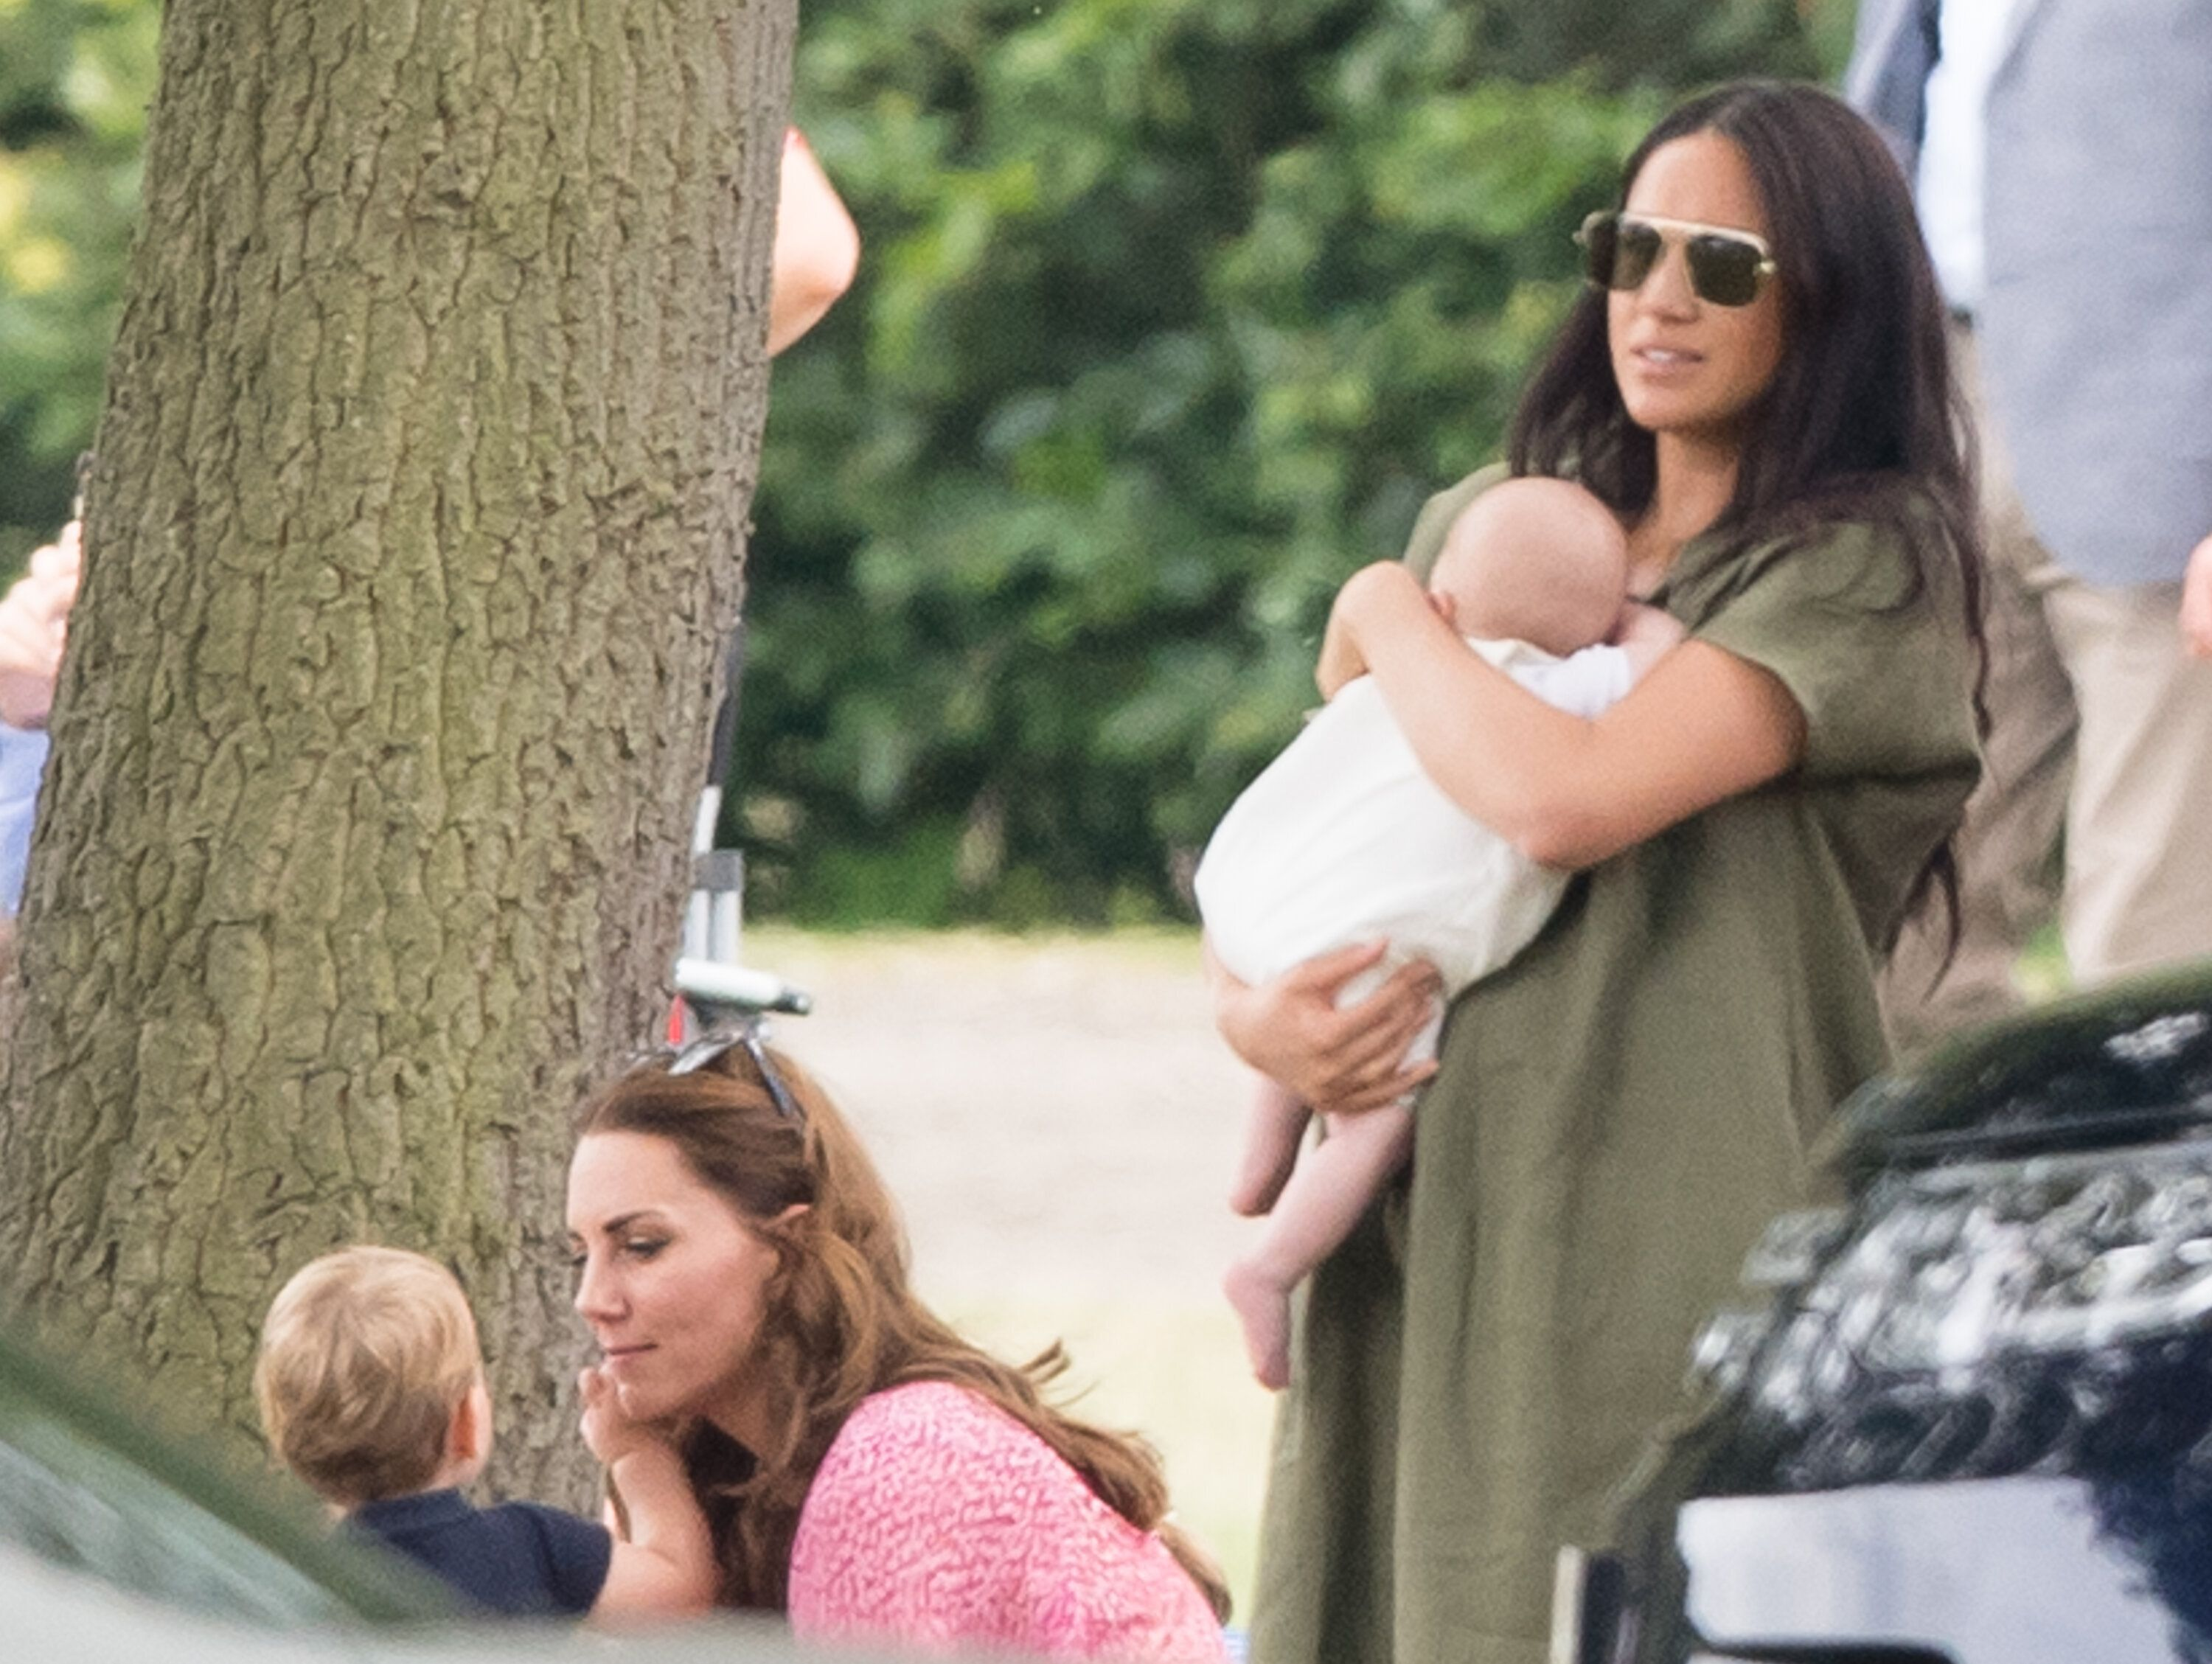 Kate and Meghan tending to their children.